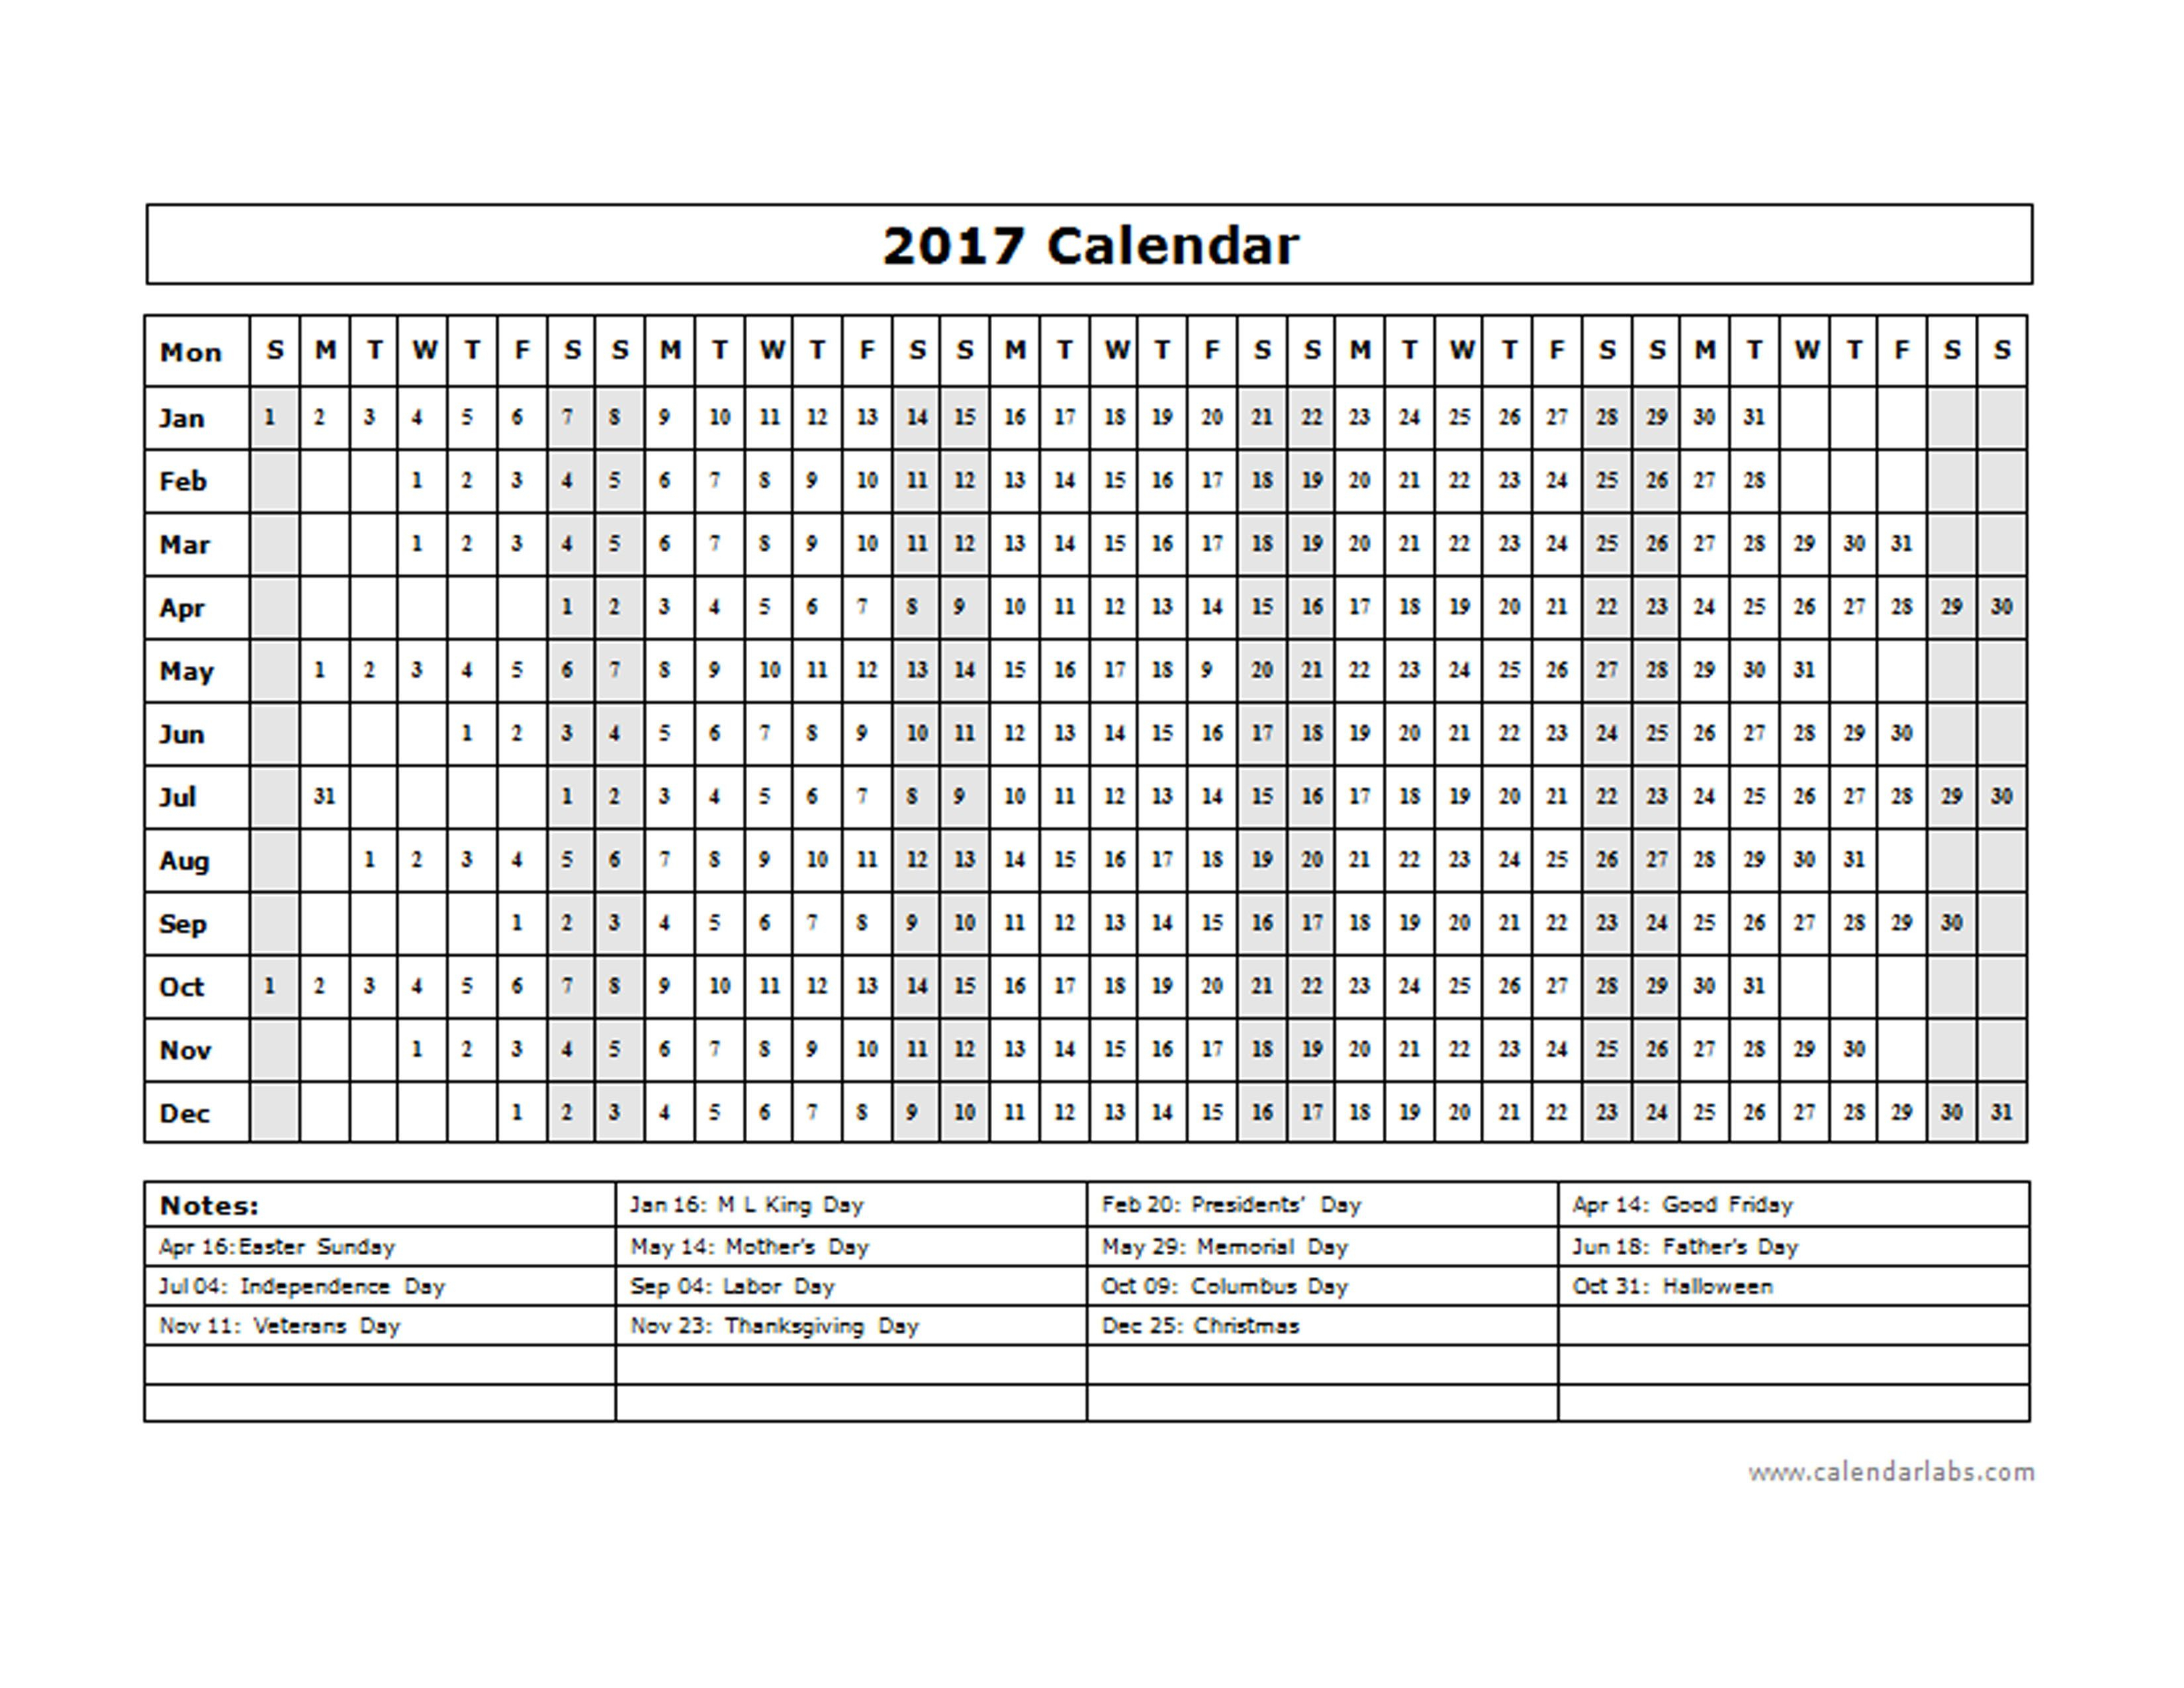 2017 Calendar Template Year At A Glance Free Printable with Year At A Glance Calendar Printable